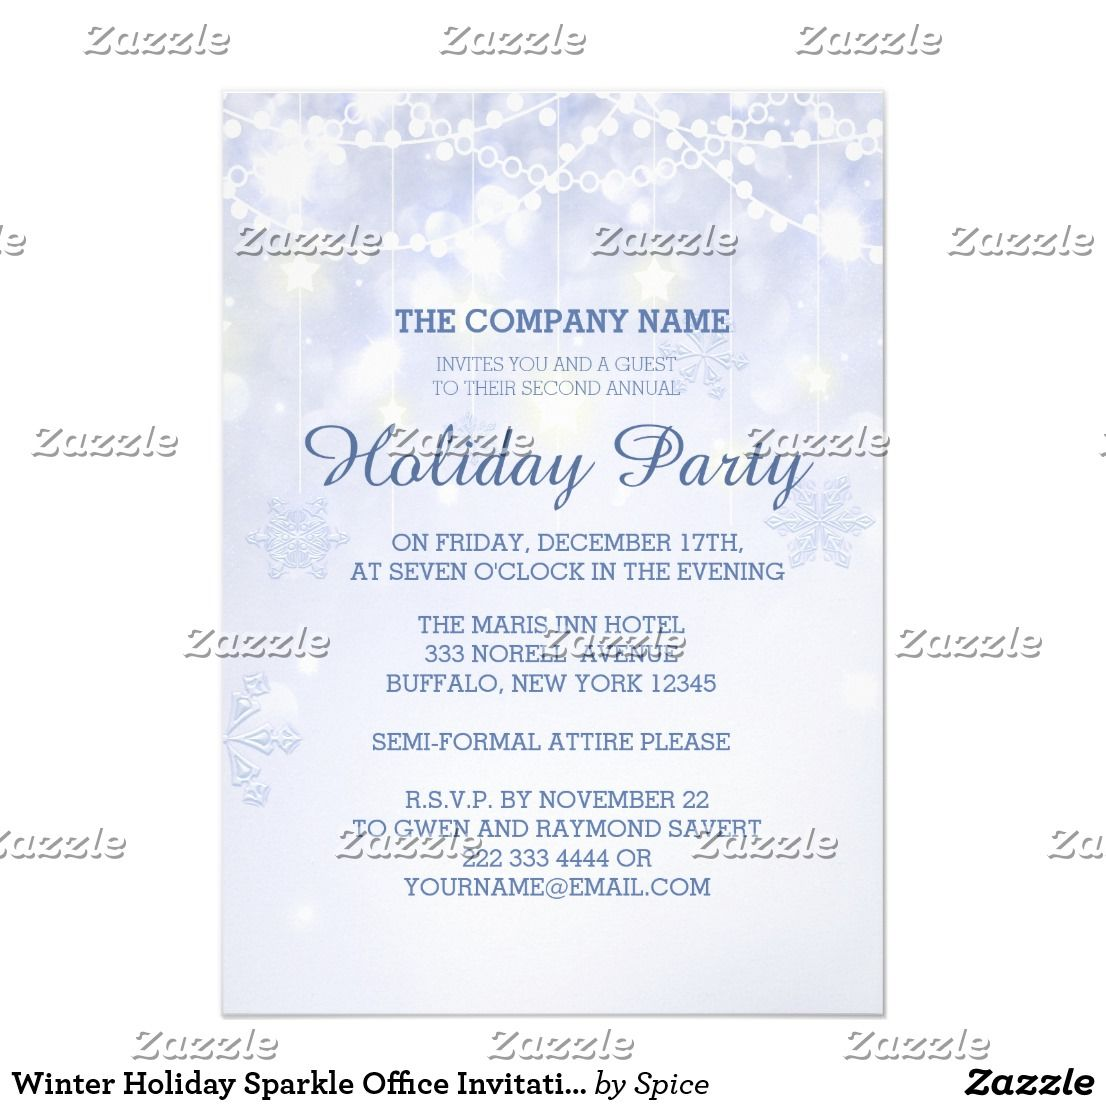 Winter Holiday Sparkle Office Invitations Festive and elegant ...